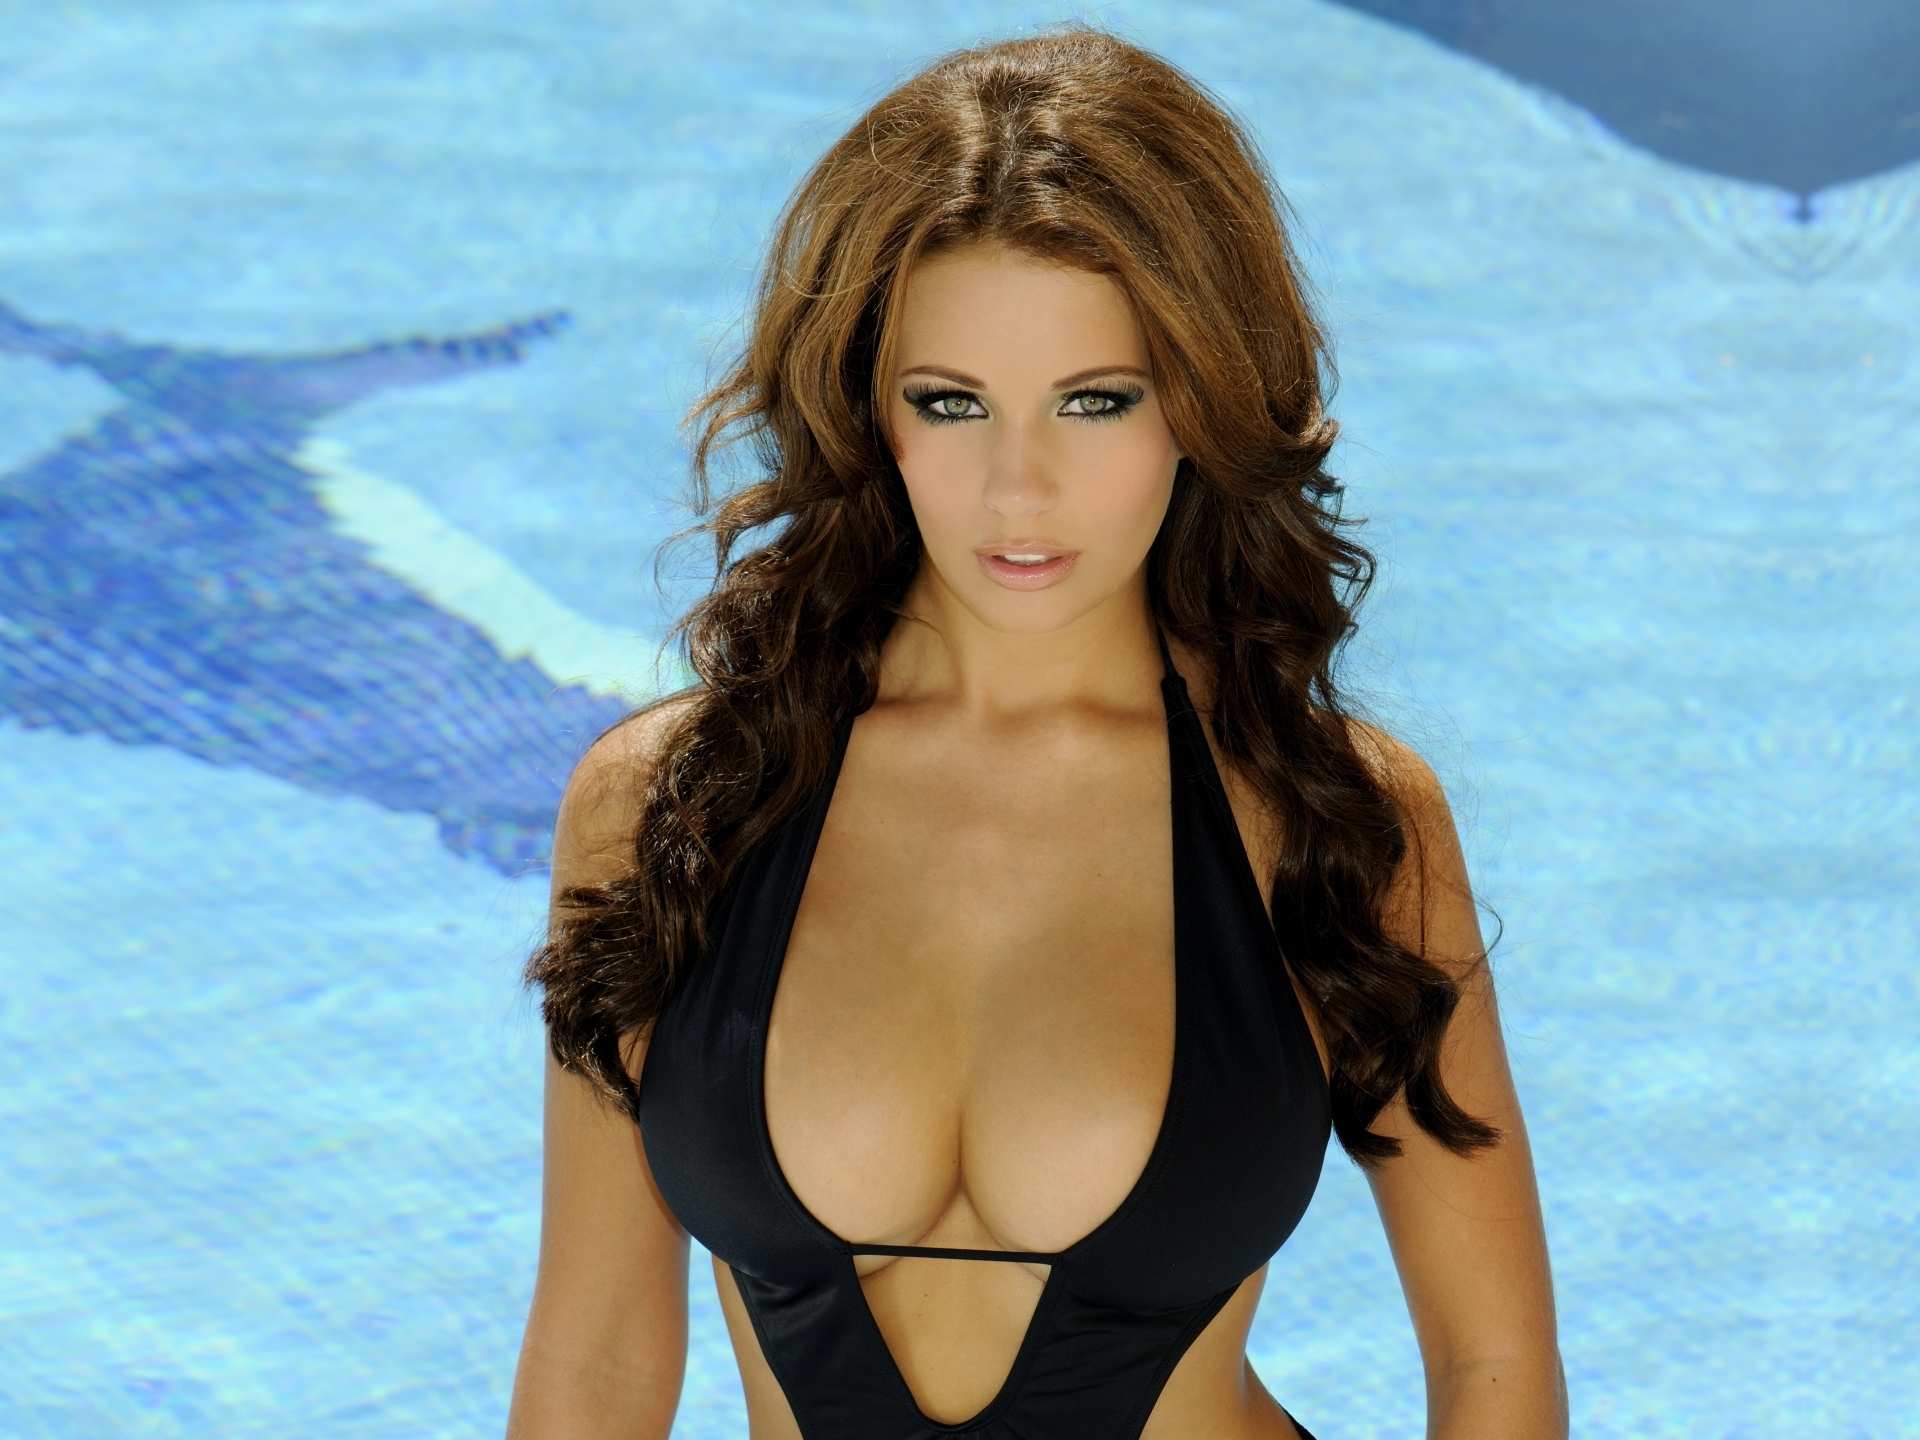 Holly Peers Wallpapers Hd